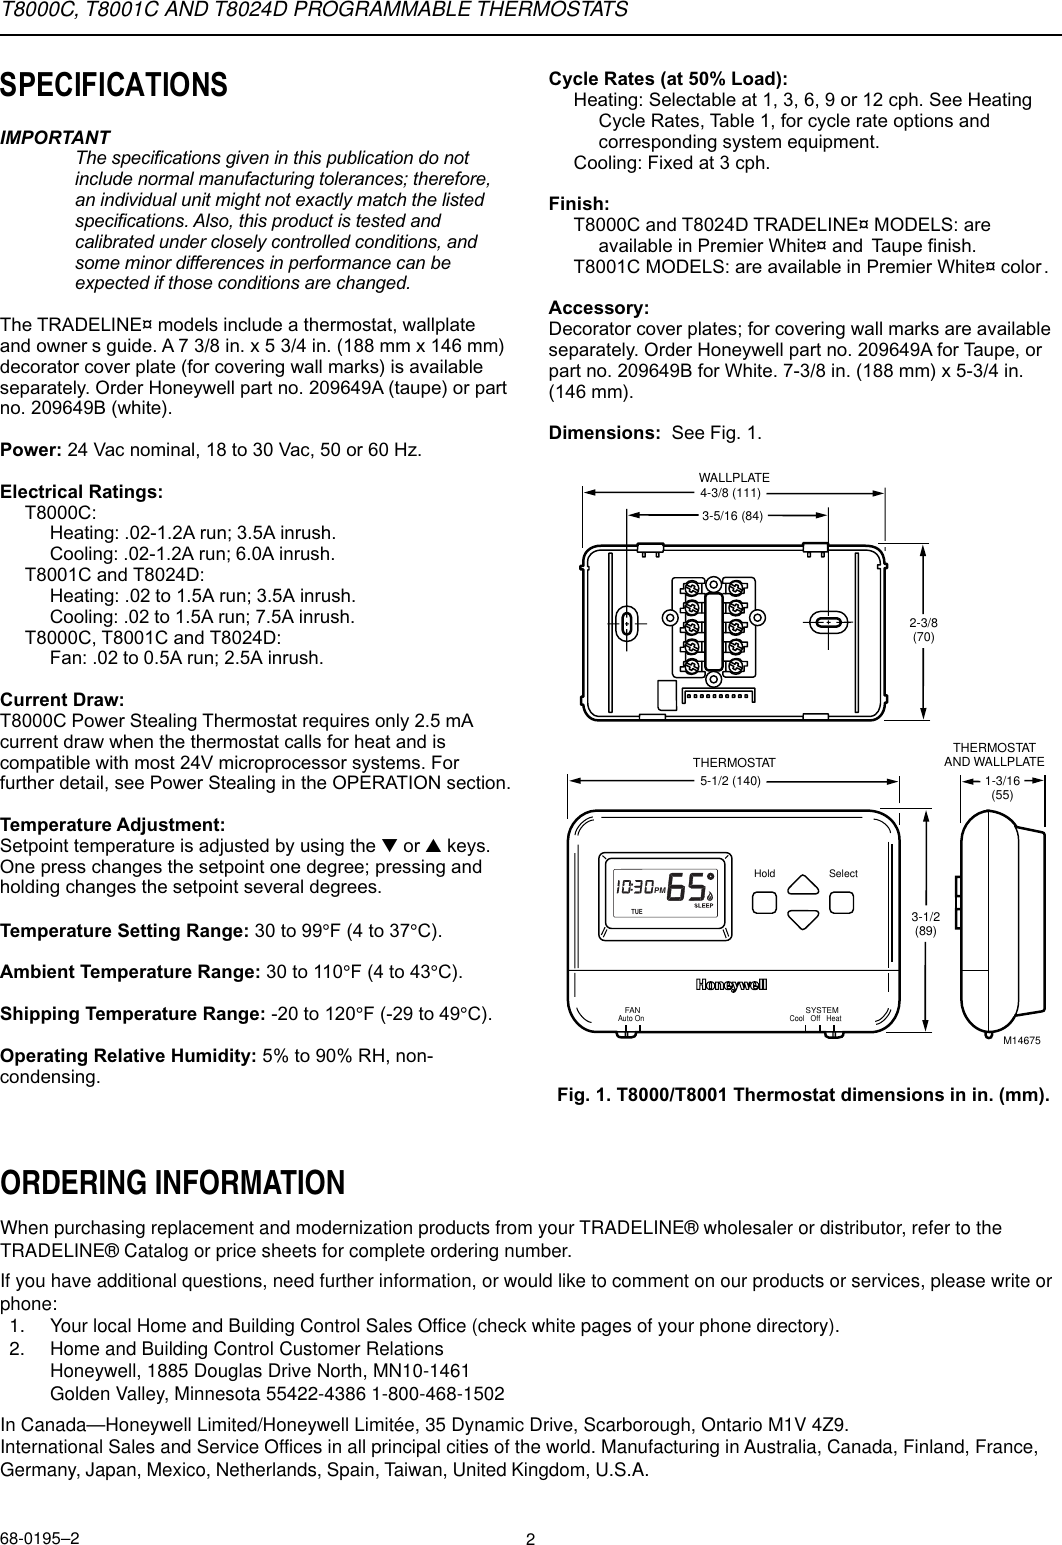 Wiring Diagram For Honeywell Dt92e : Honeywell thermostat t c manual